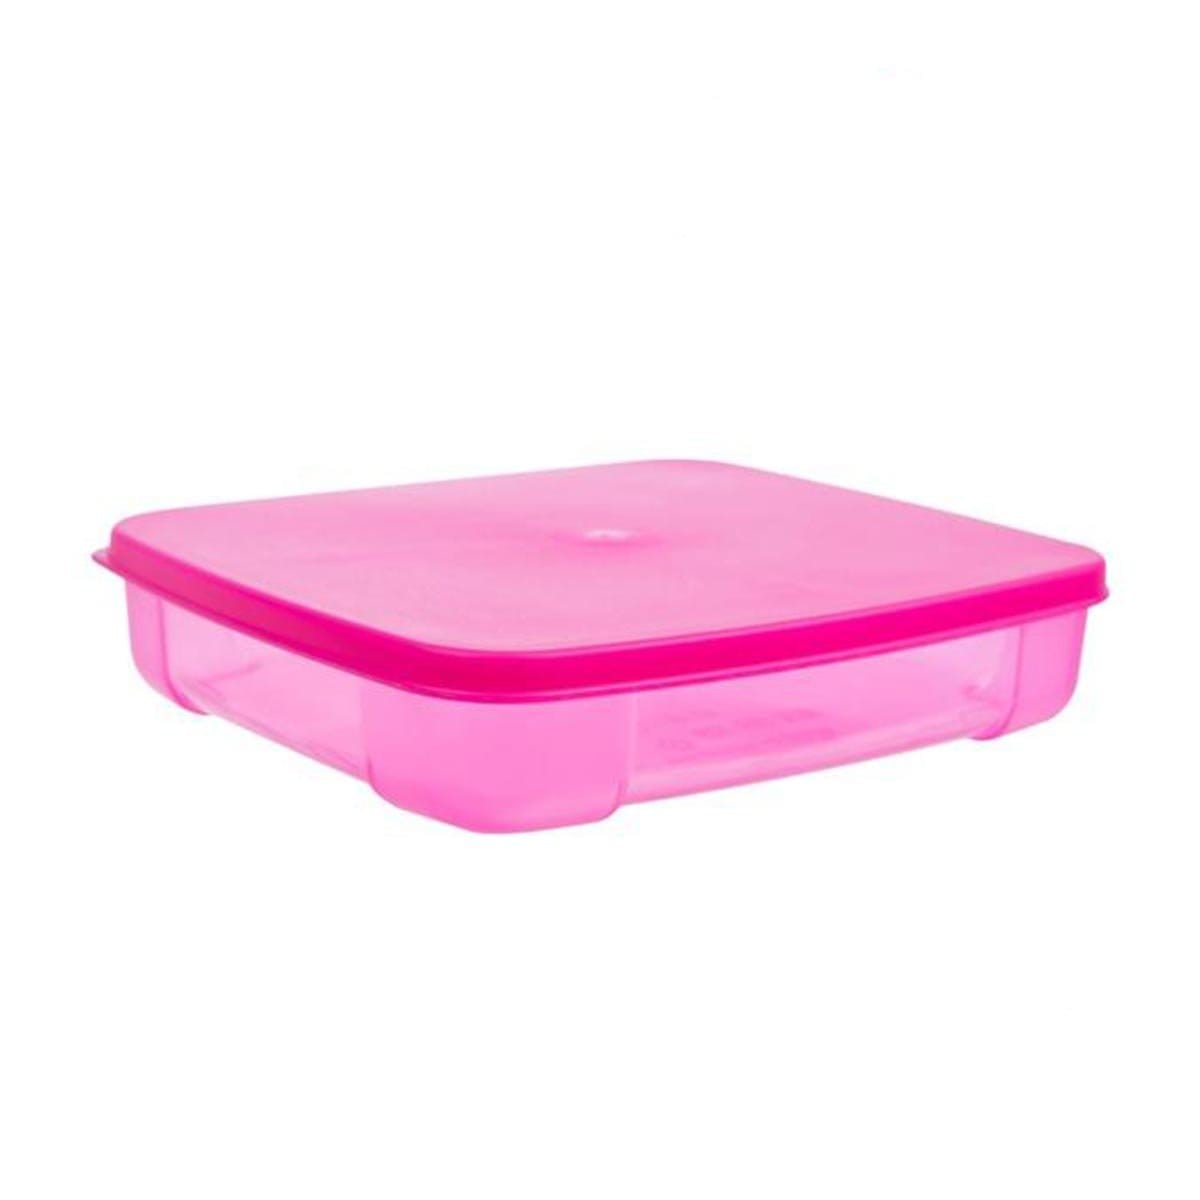 0101 Food Container 0.6L